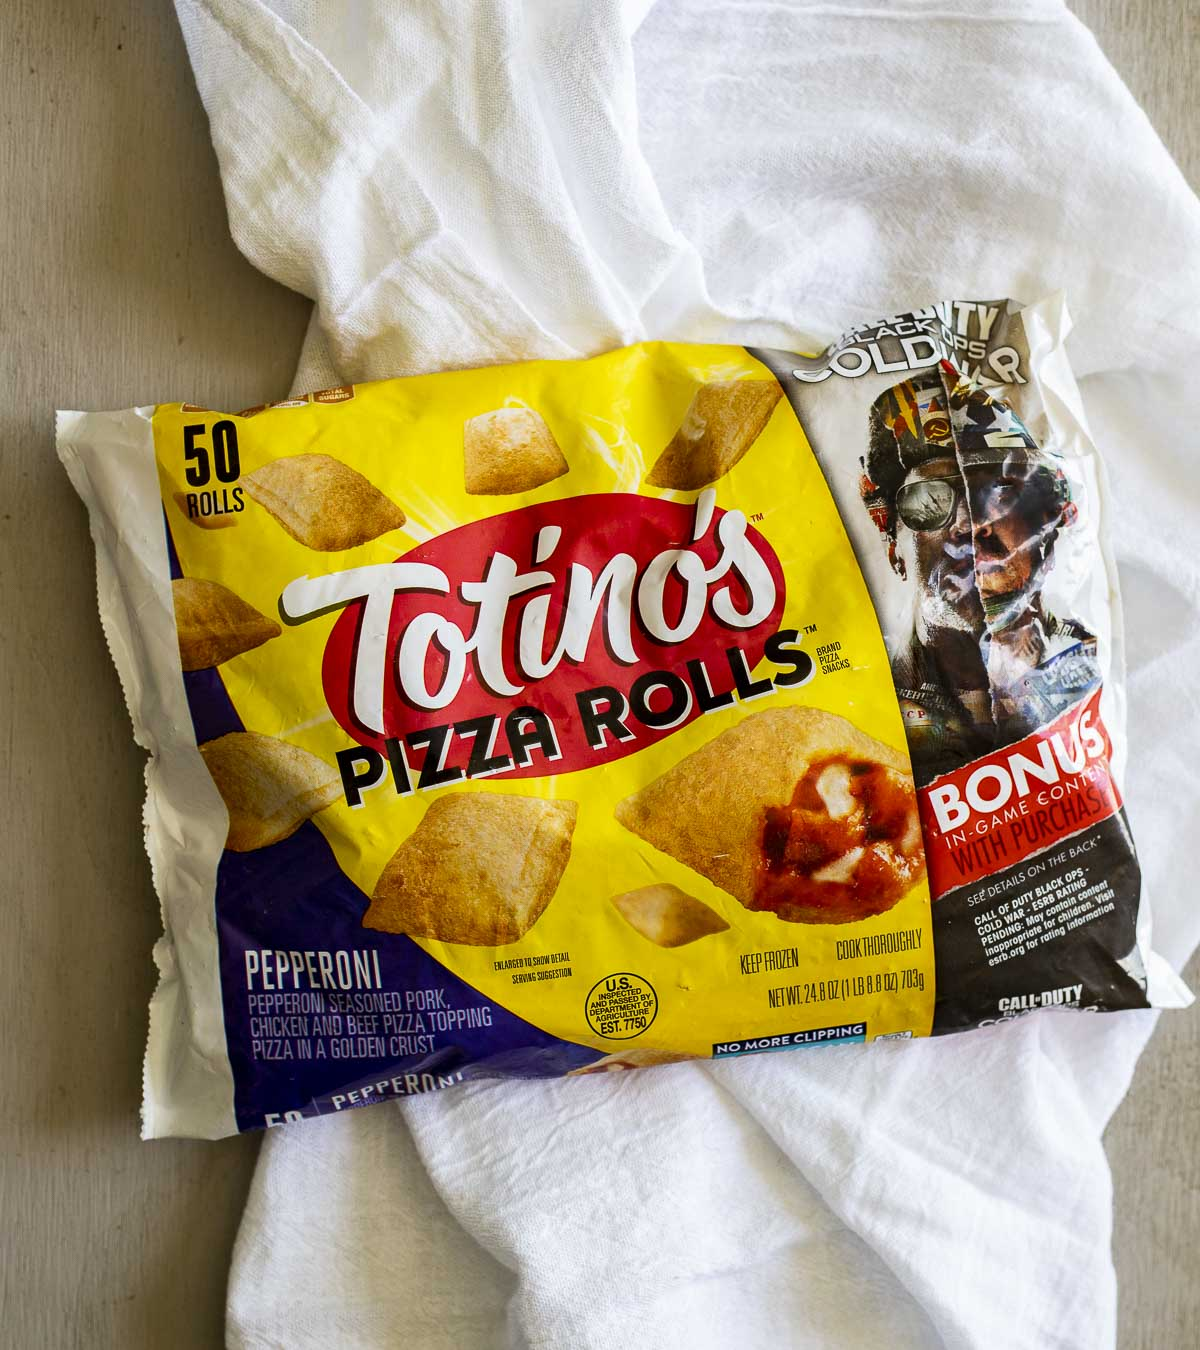 A bag of frozen Totino's pizza rolls.